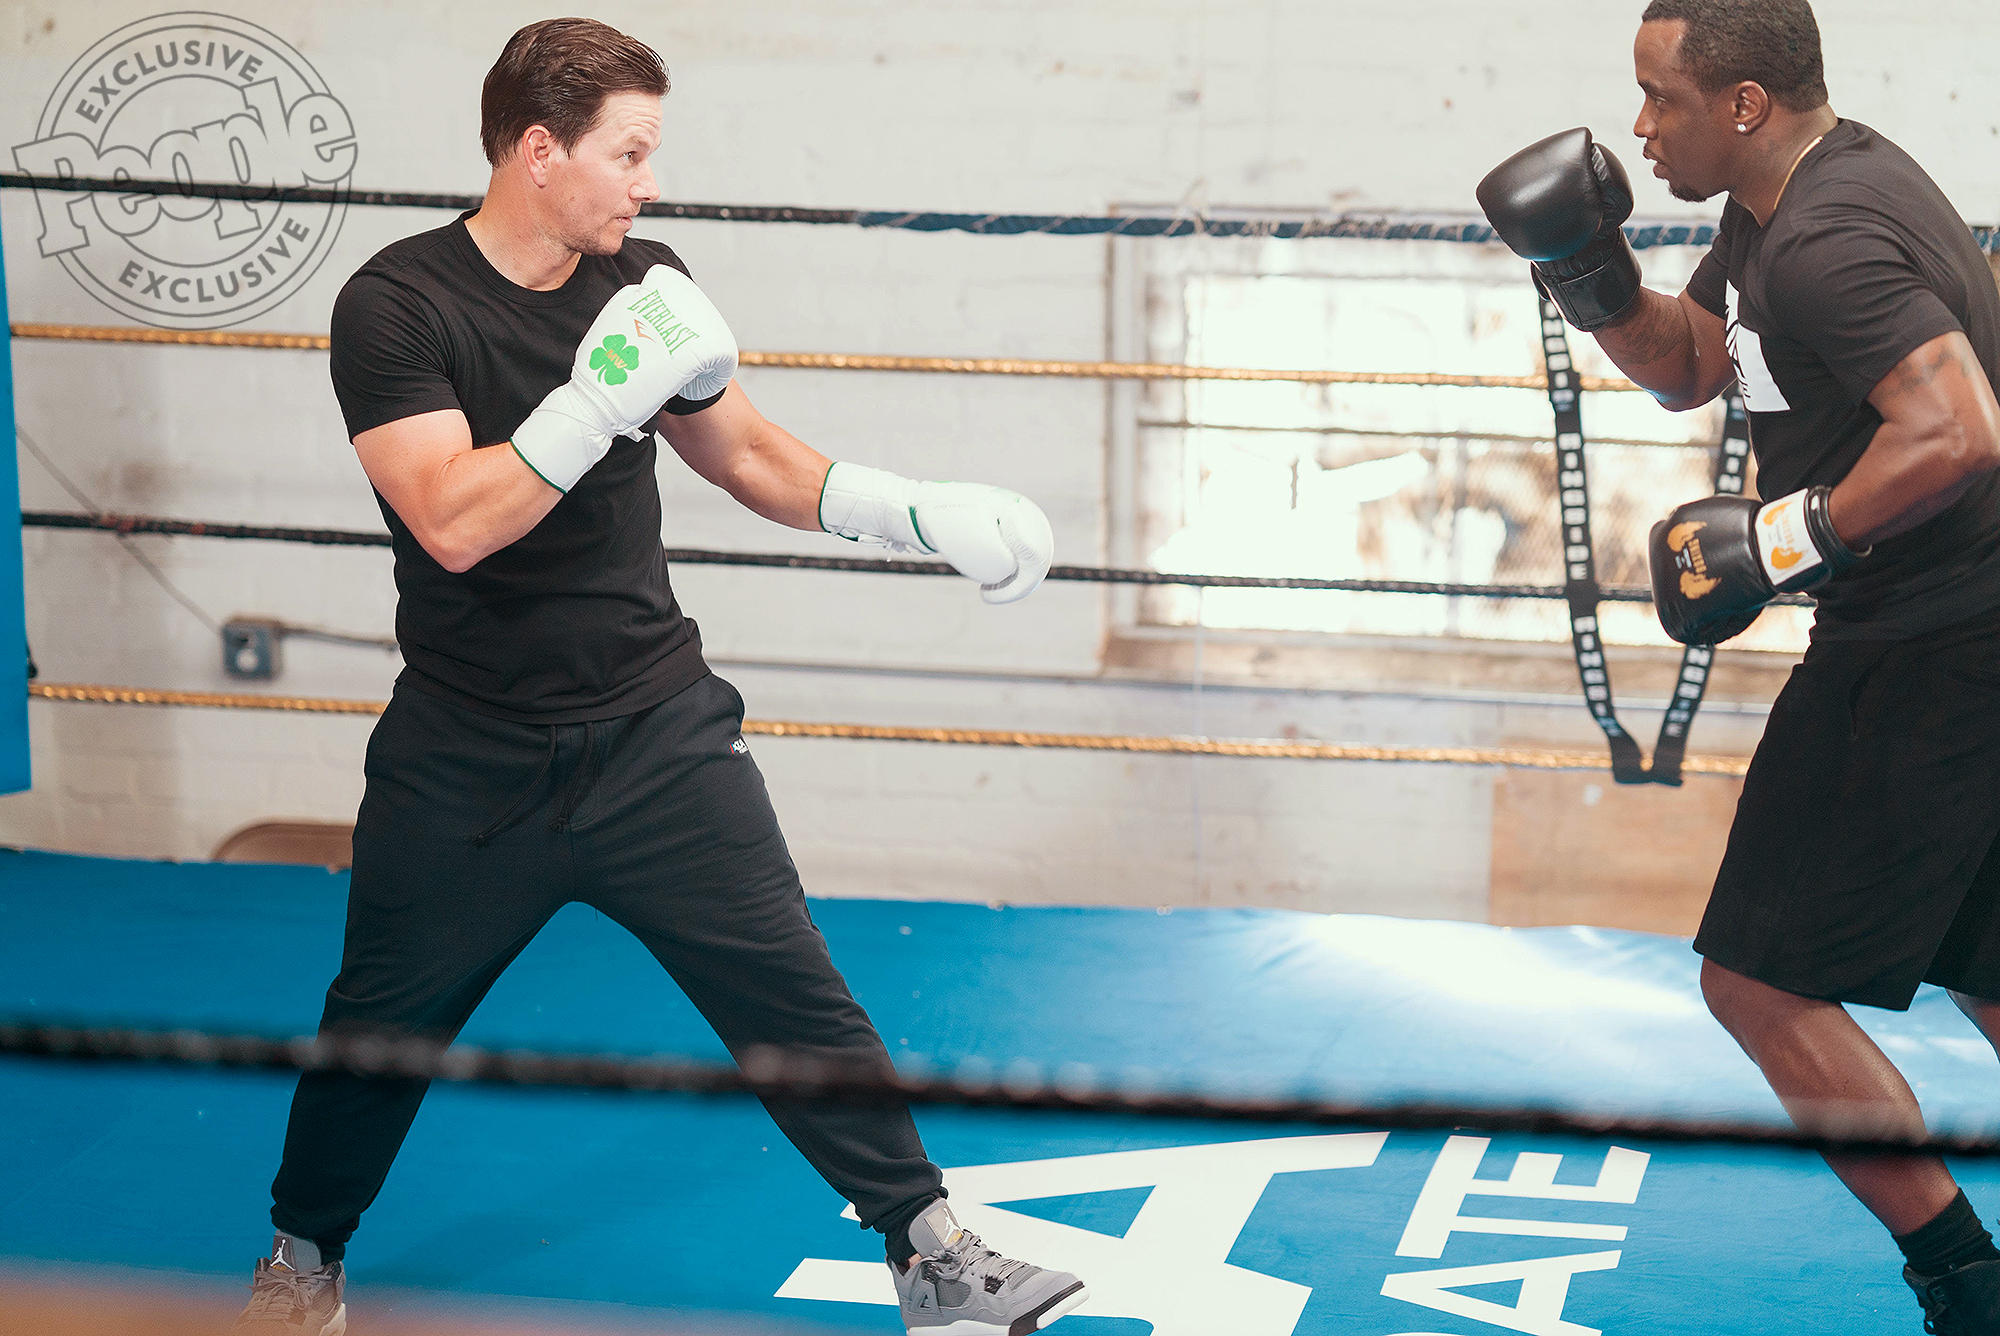 Diddy and Mark Wahlberg commercialCredit: Courtesy Combs Enterprises